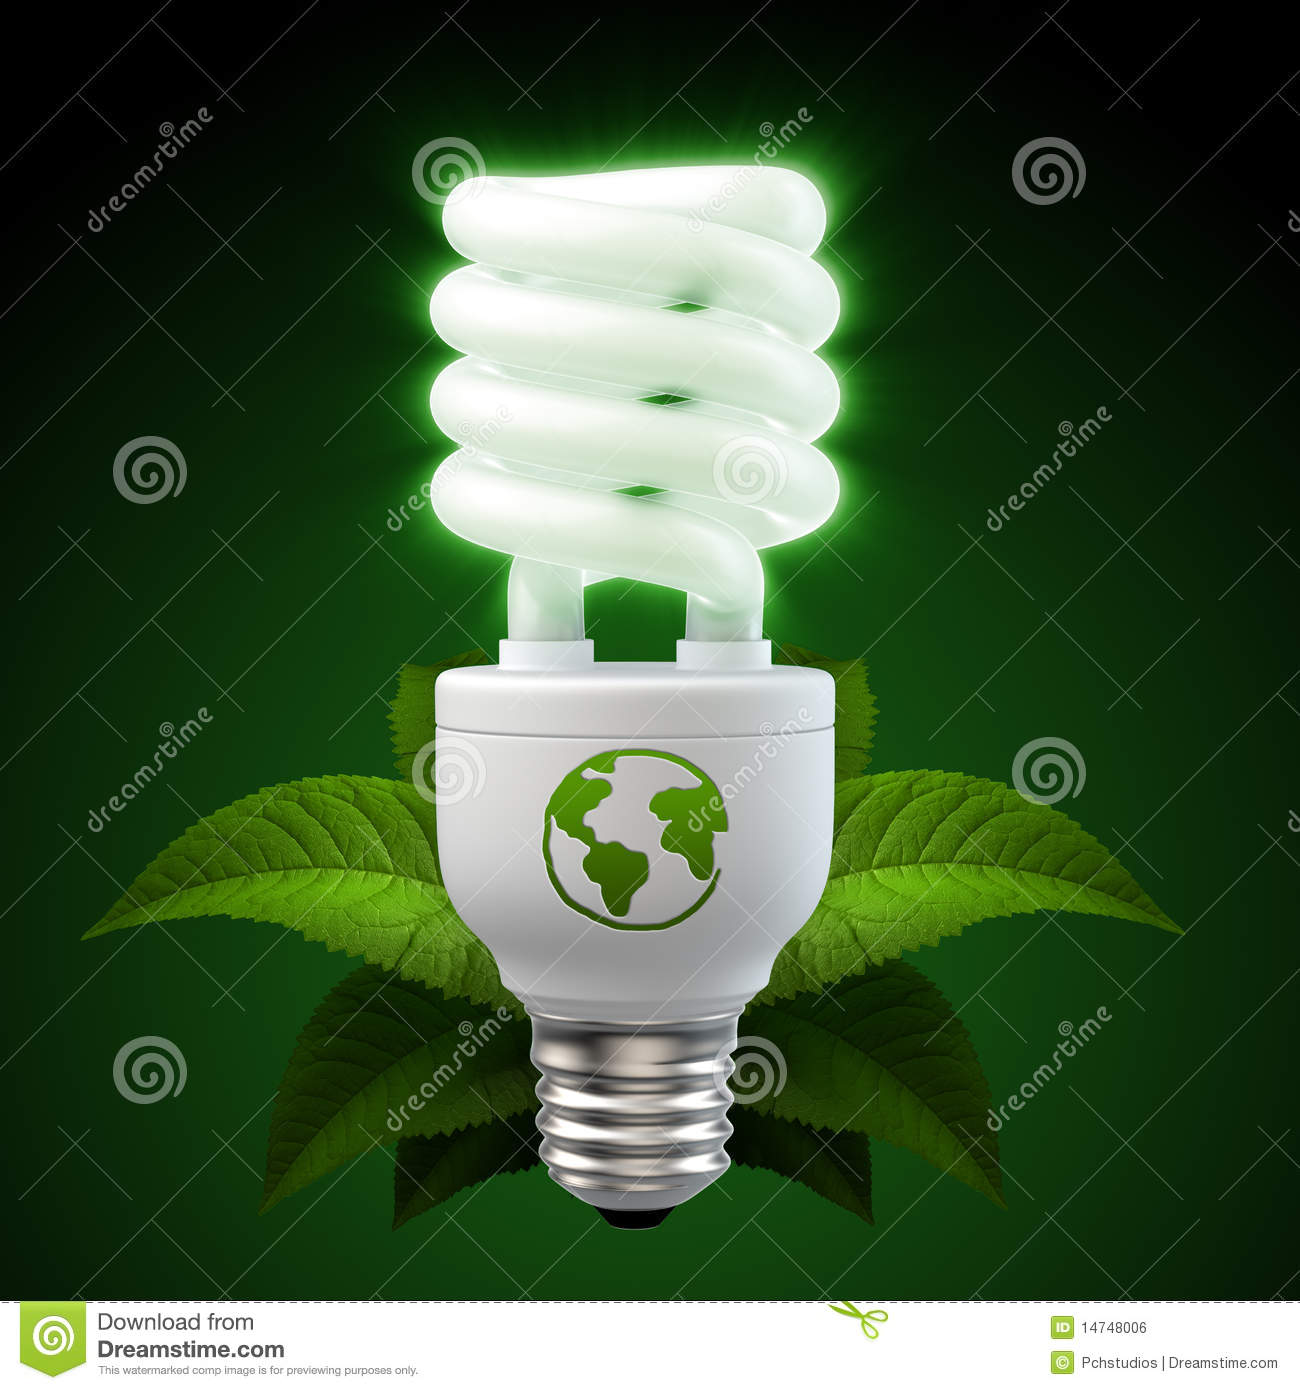 White Energy Saving Light Bulb With Leafs On Black Royalty Free Stock Image Image 14748006